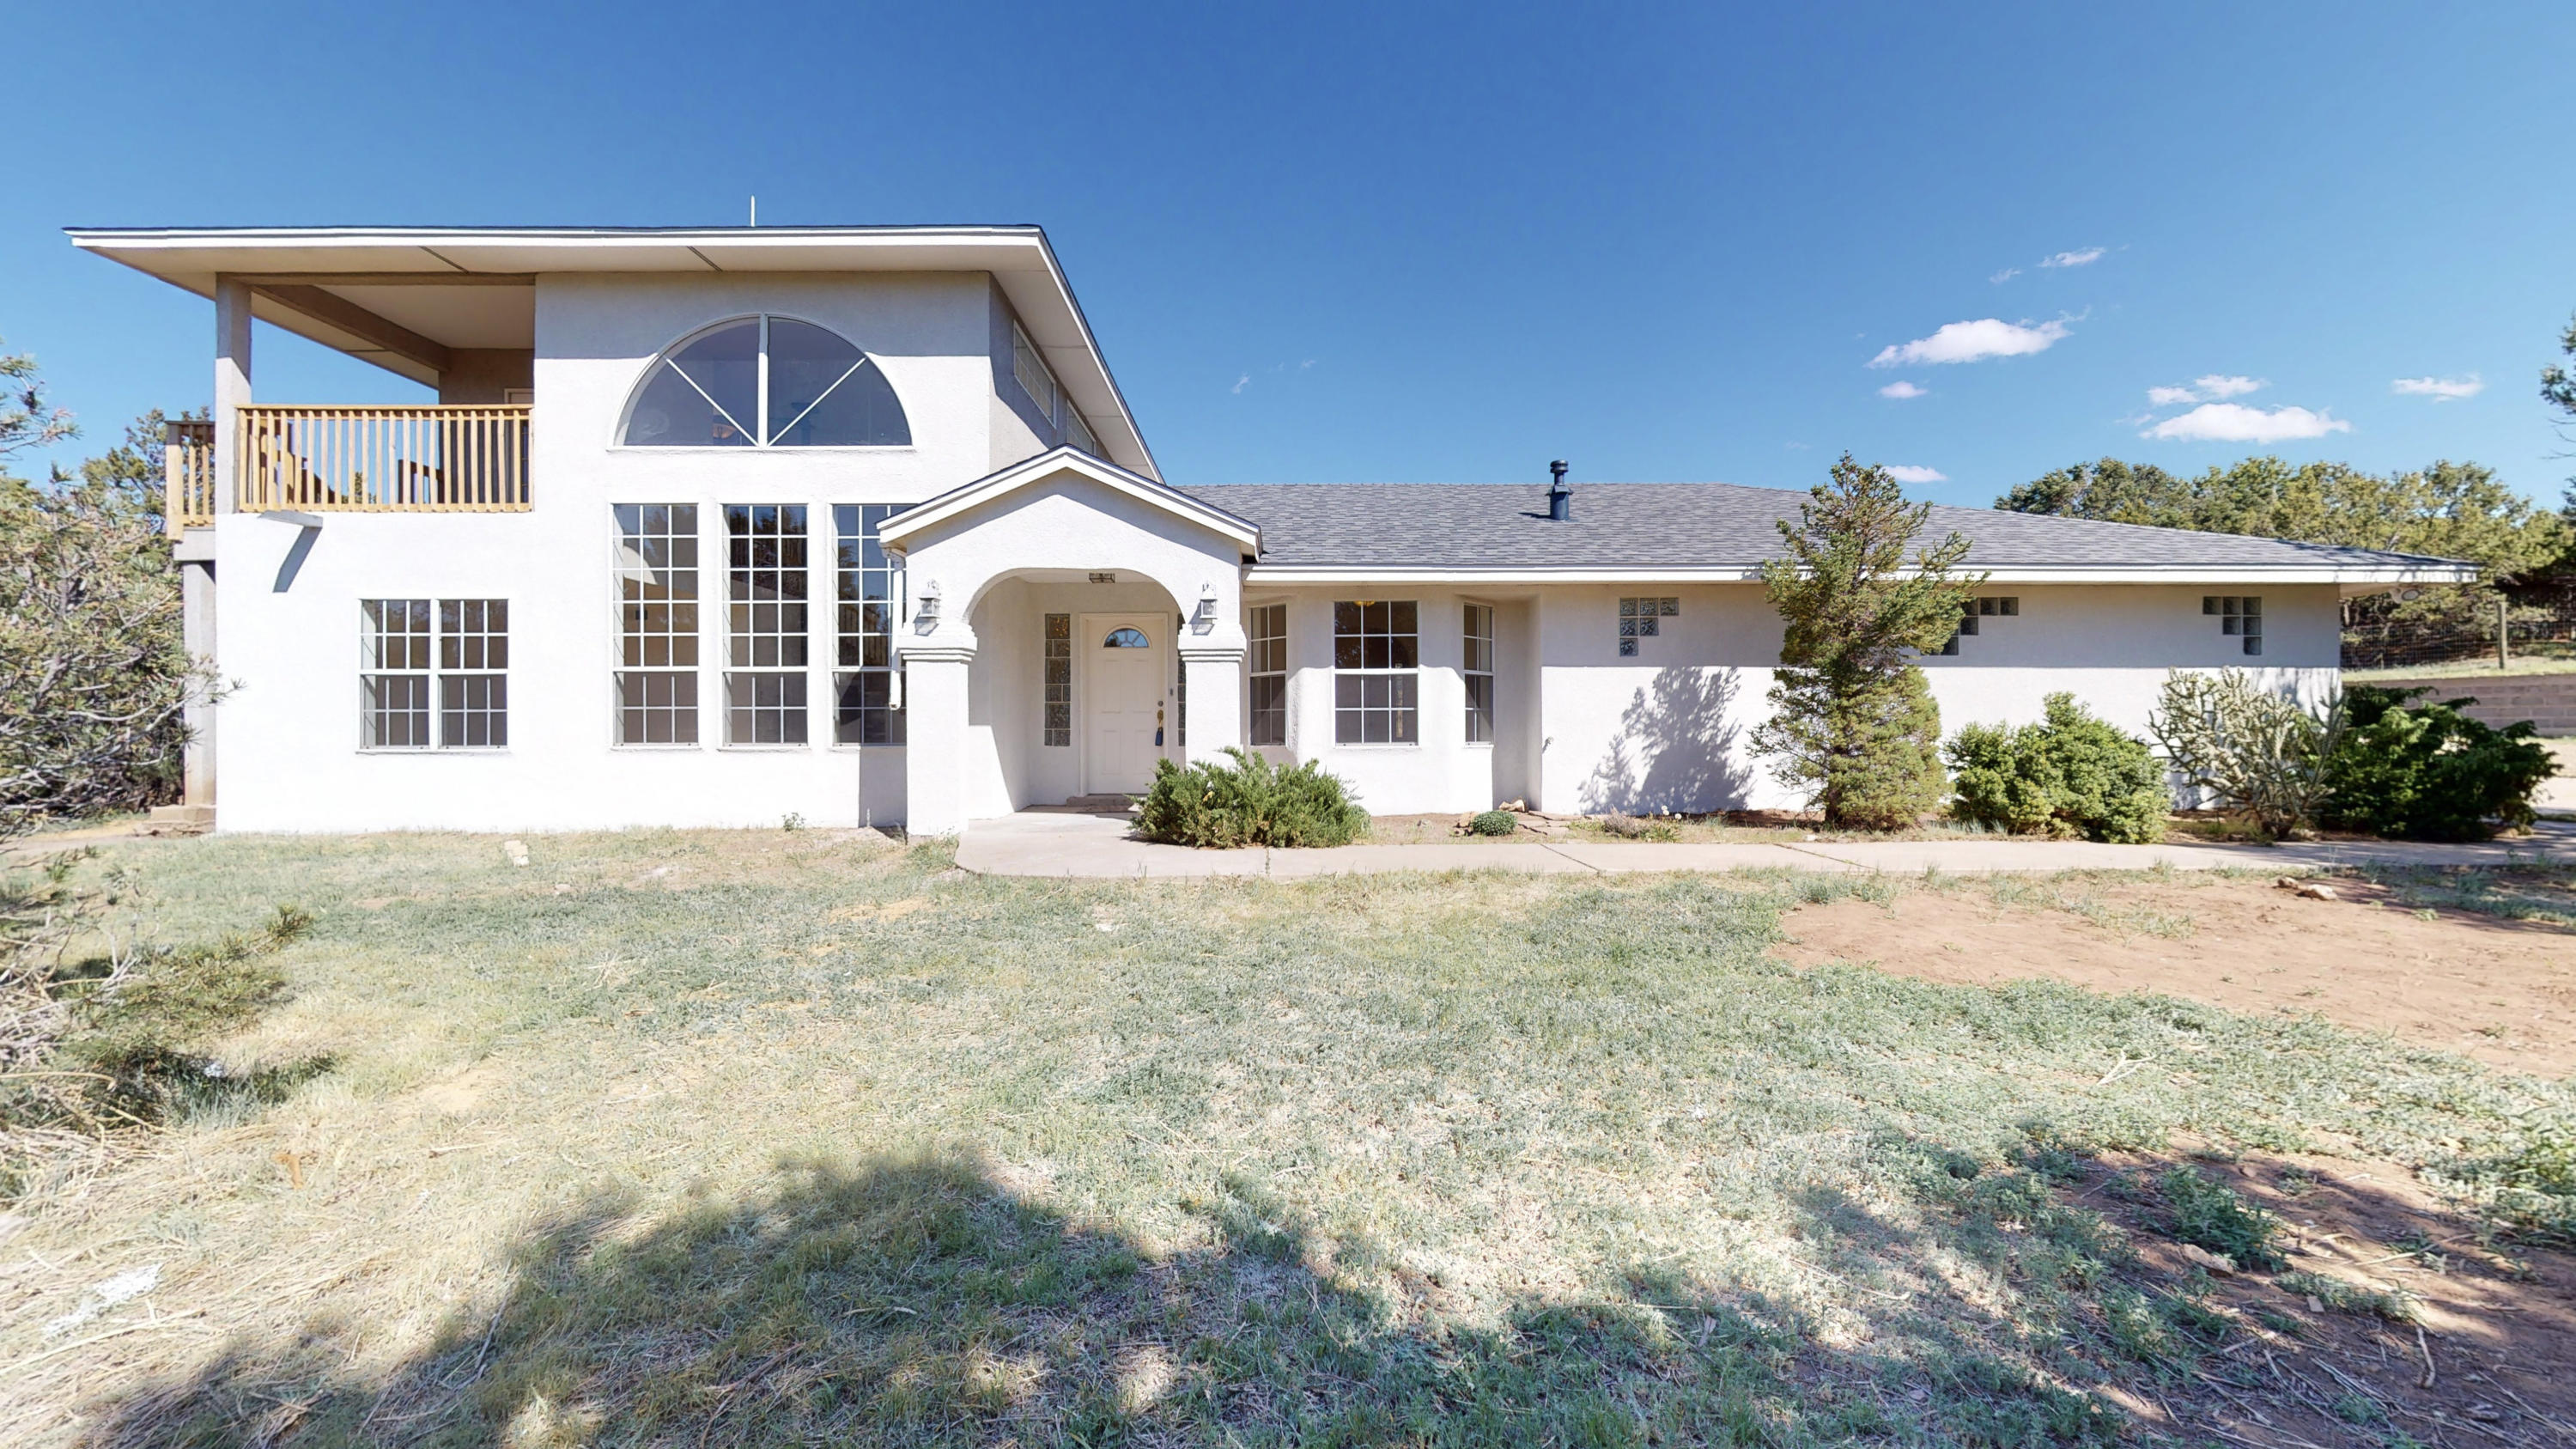 15 ANNE Court Property Photo - Tijeras, NM real estate listing